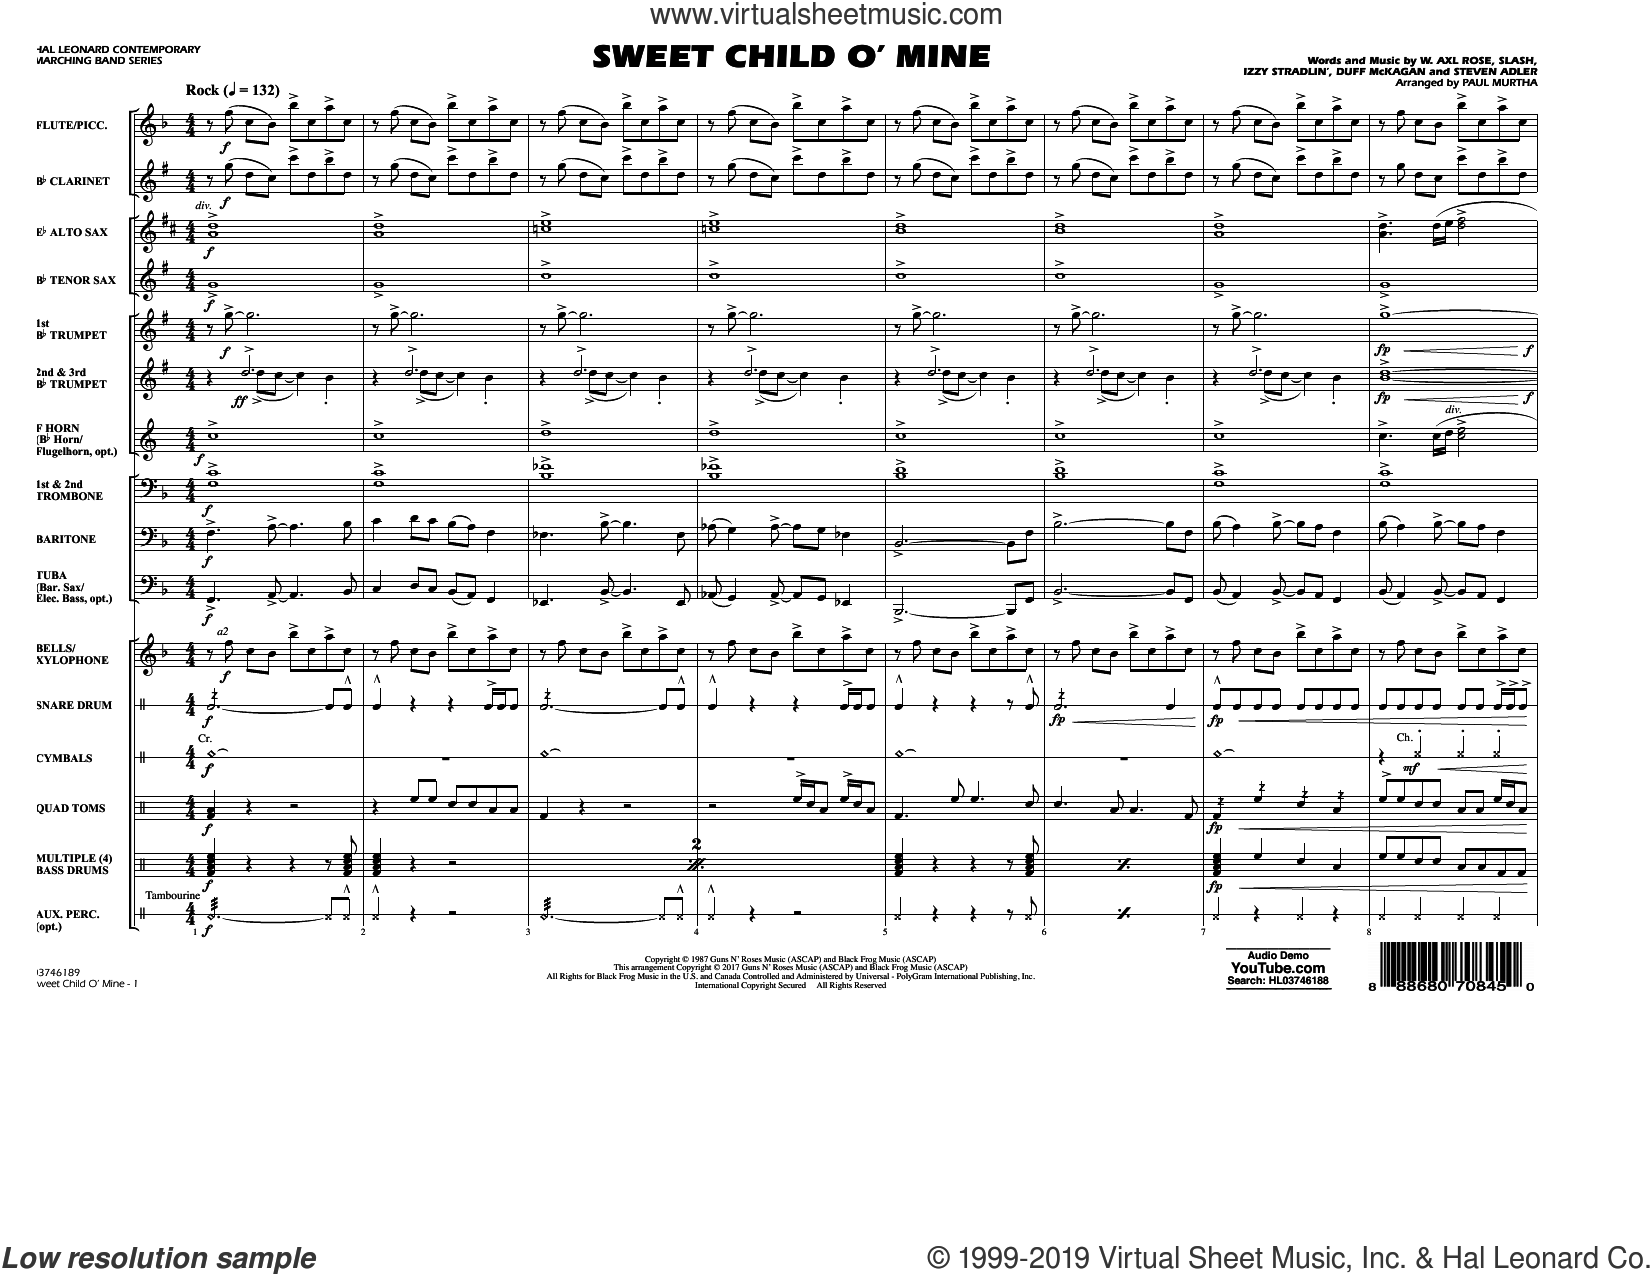 Sweet Child o' Mine (COMPLETE) sheet music for marching band by Paul Murtha, Axl Rose, Duff McKagan, Slash and Steven Adler, intermediate skill level